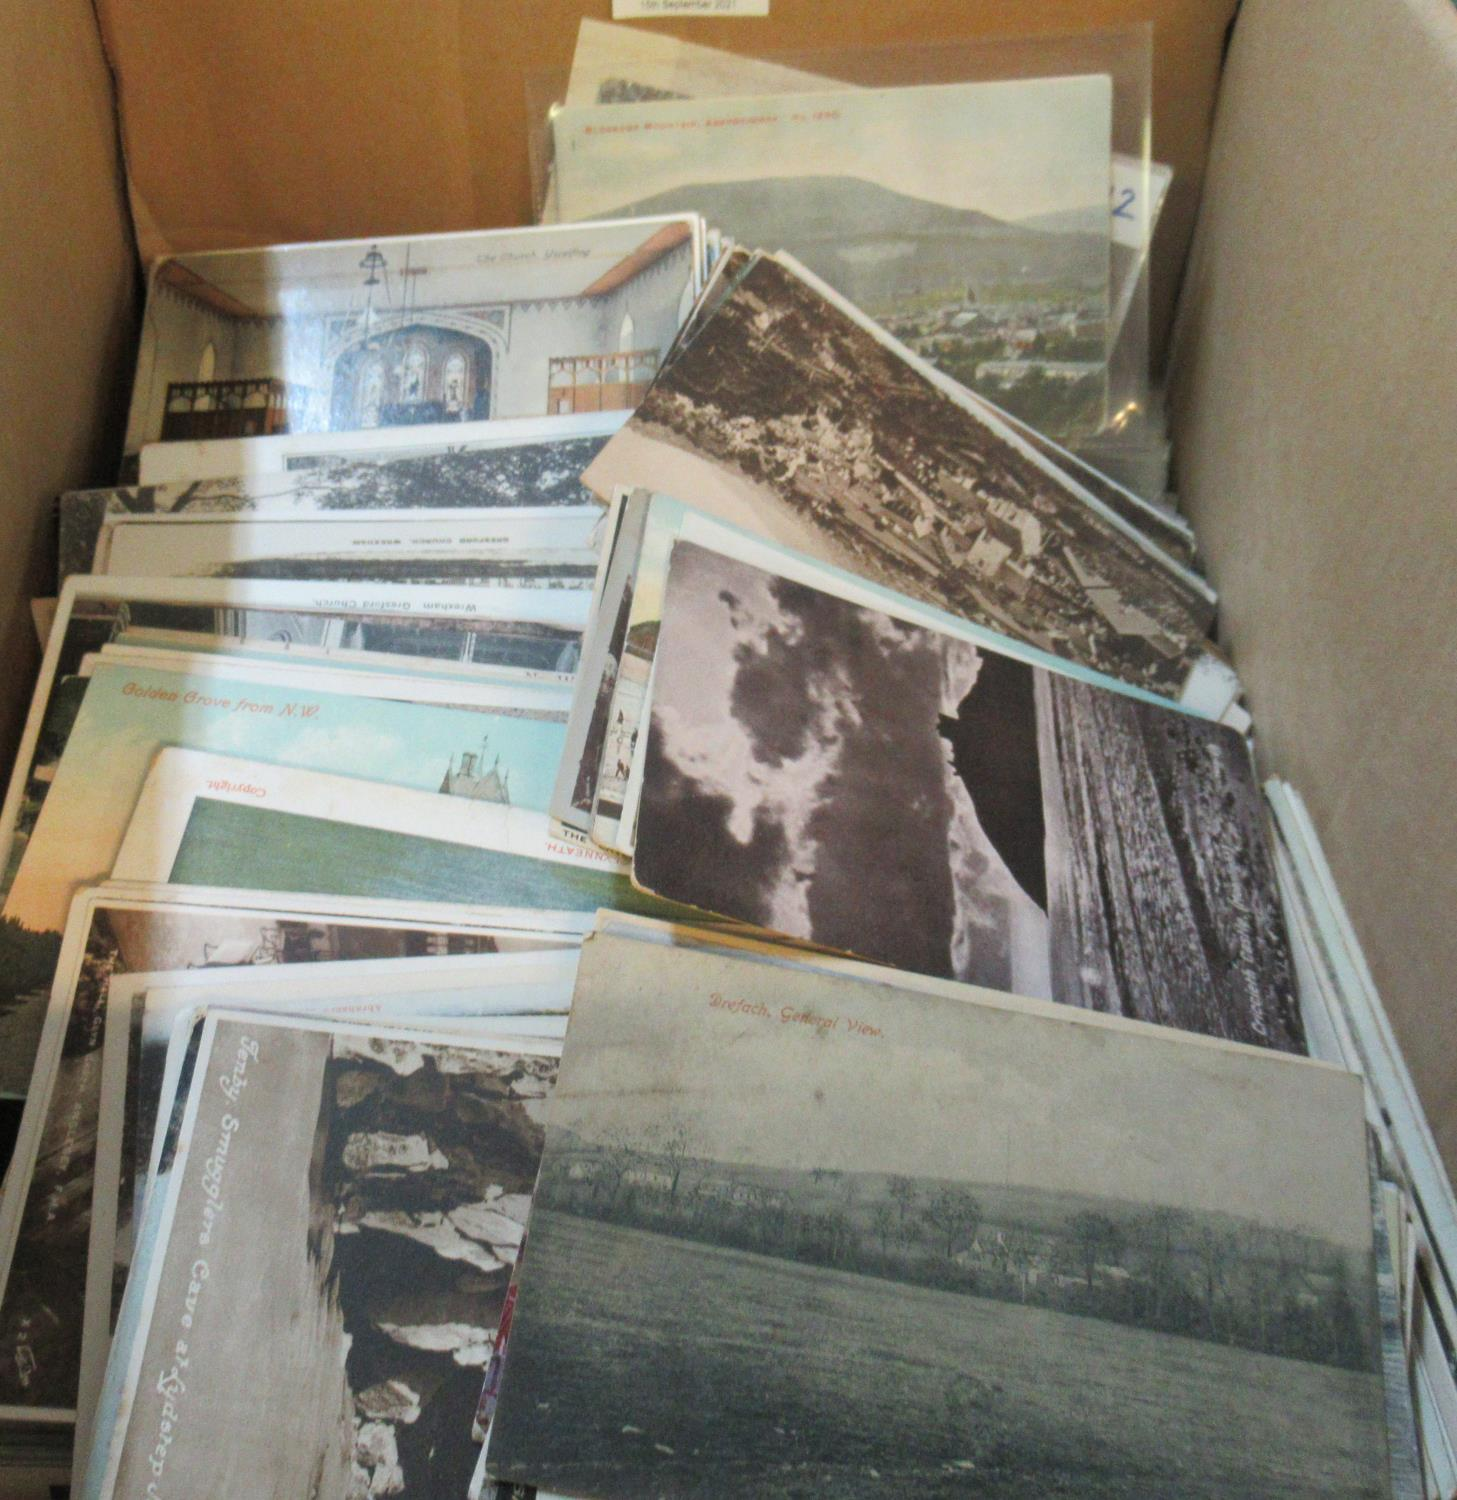 Postcards - large collection of Welsh cards in box, early to 1950's. About 3500 postcards covering